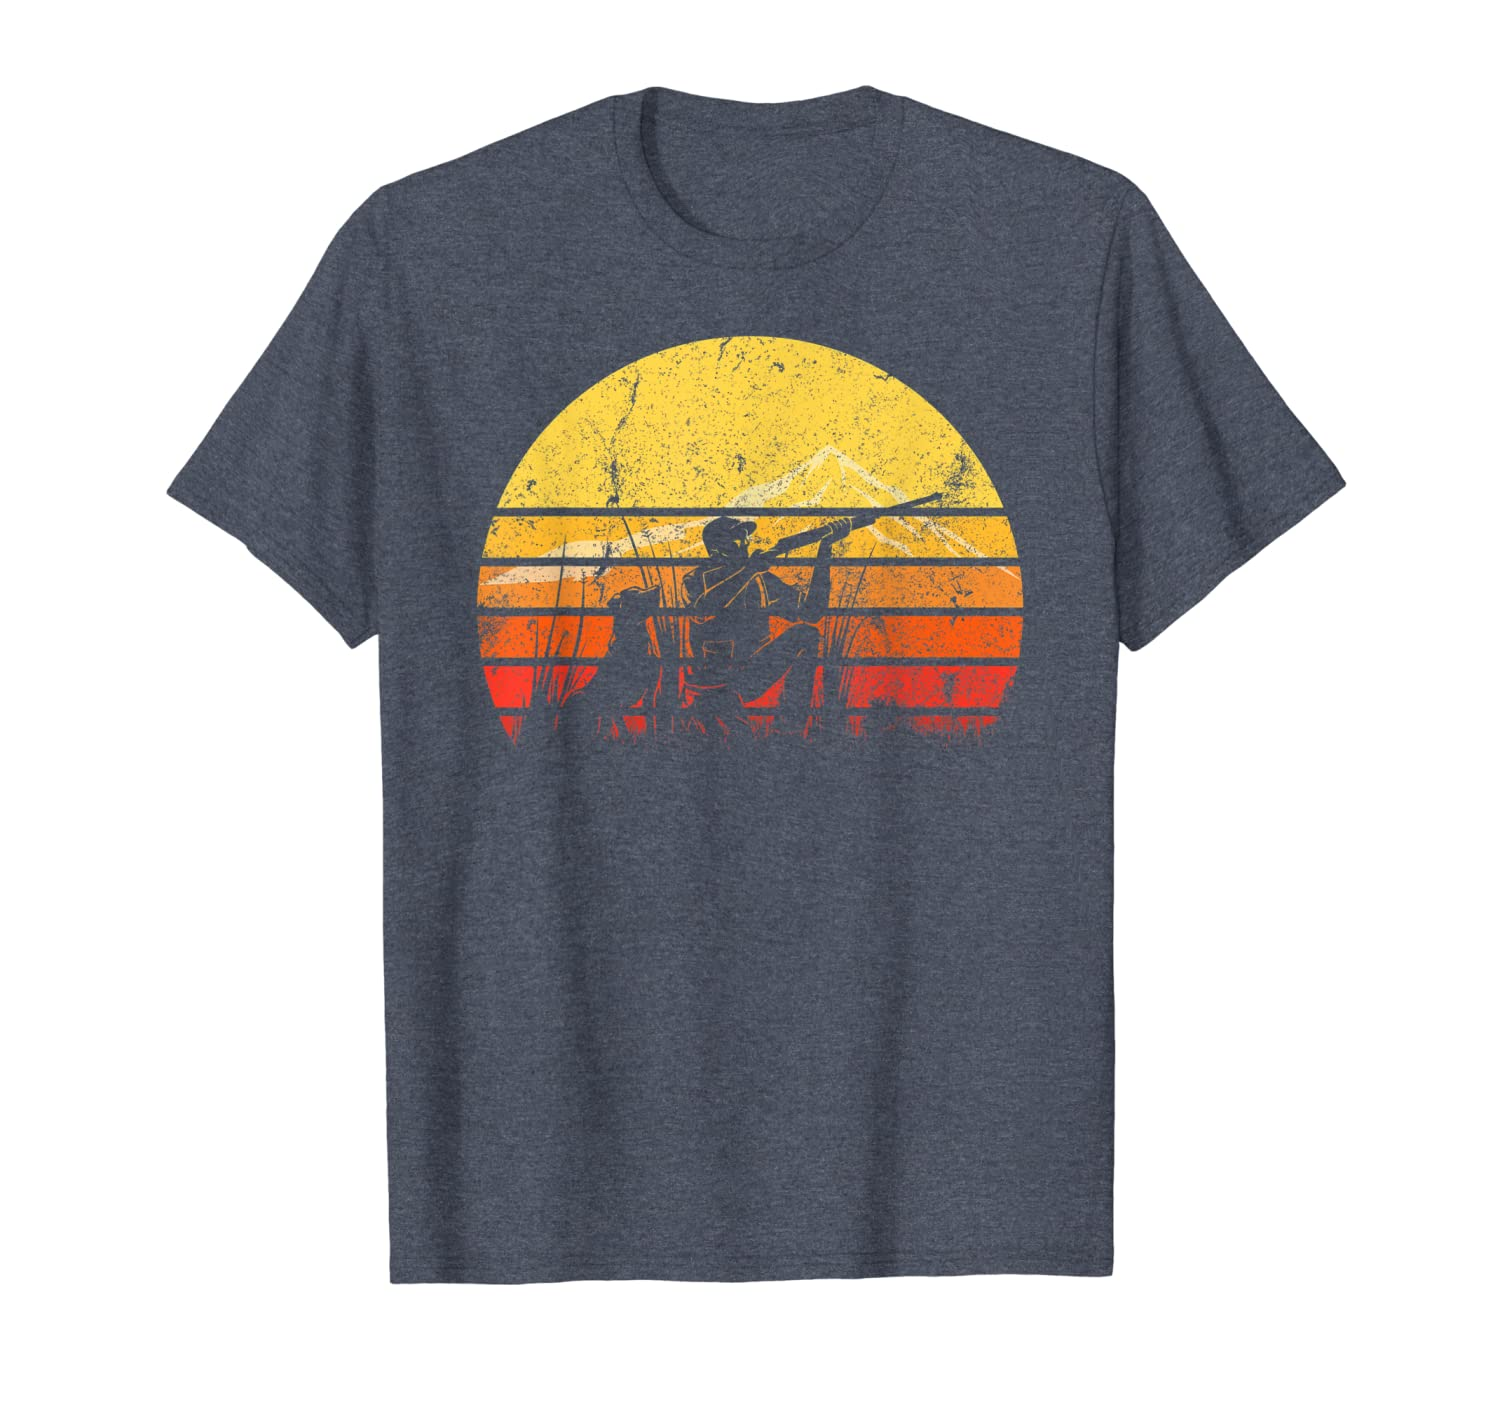 Vintage Retro Duck Hunting Hunter Silhouette Sun Distressed T-Shirt Unisex Tshirt